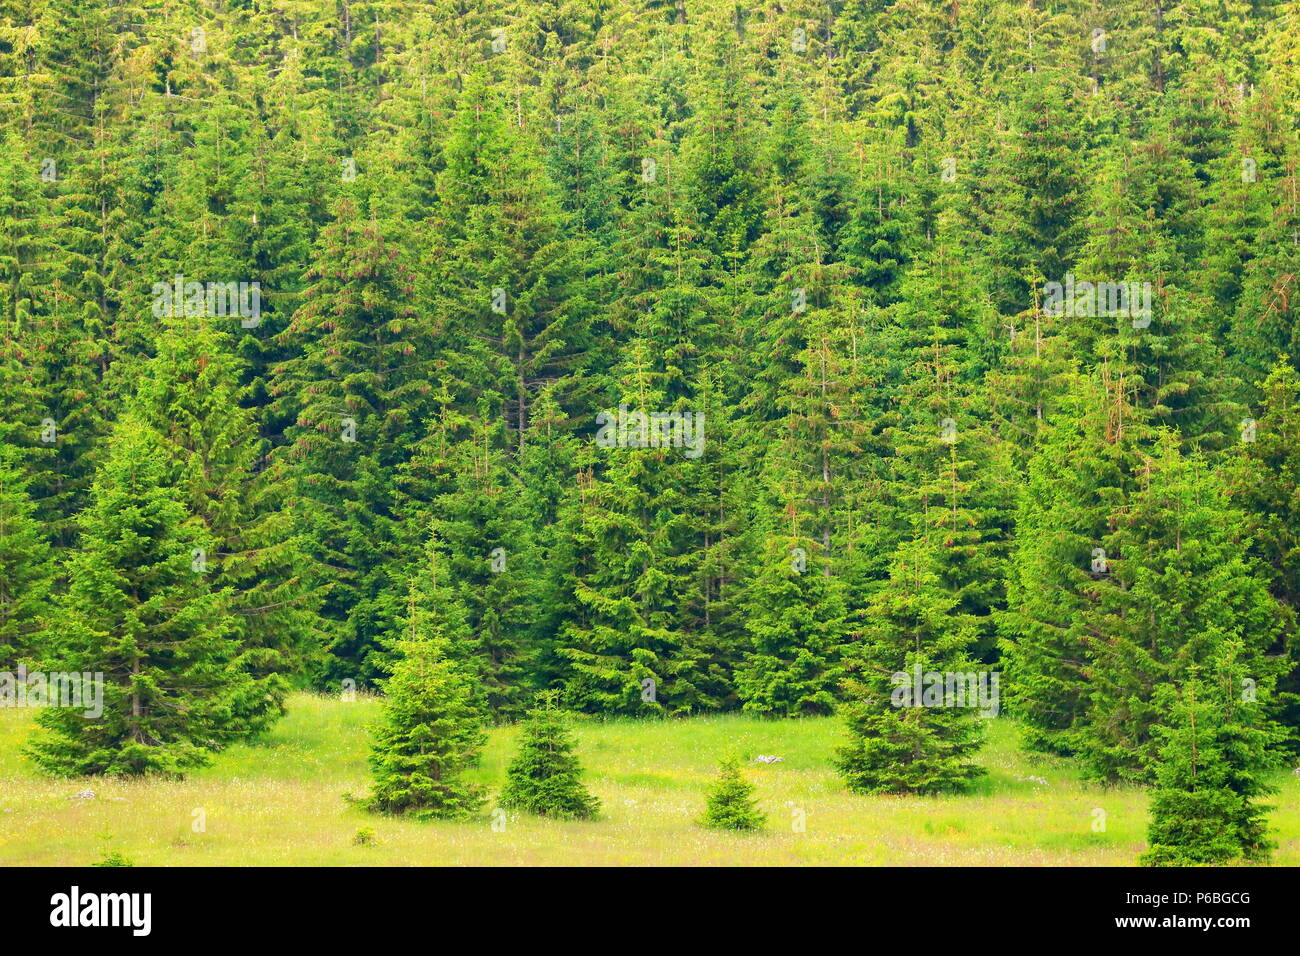 Forest landscape in Gorski Kotar area, Croatia Stock Photo